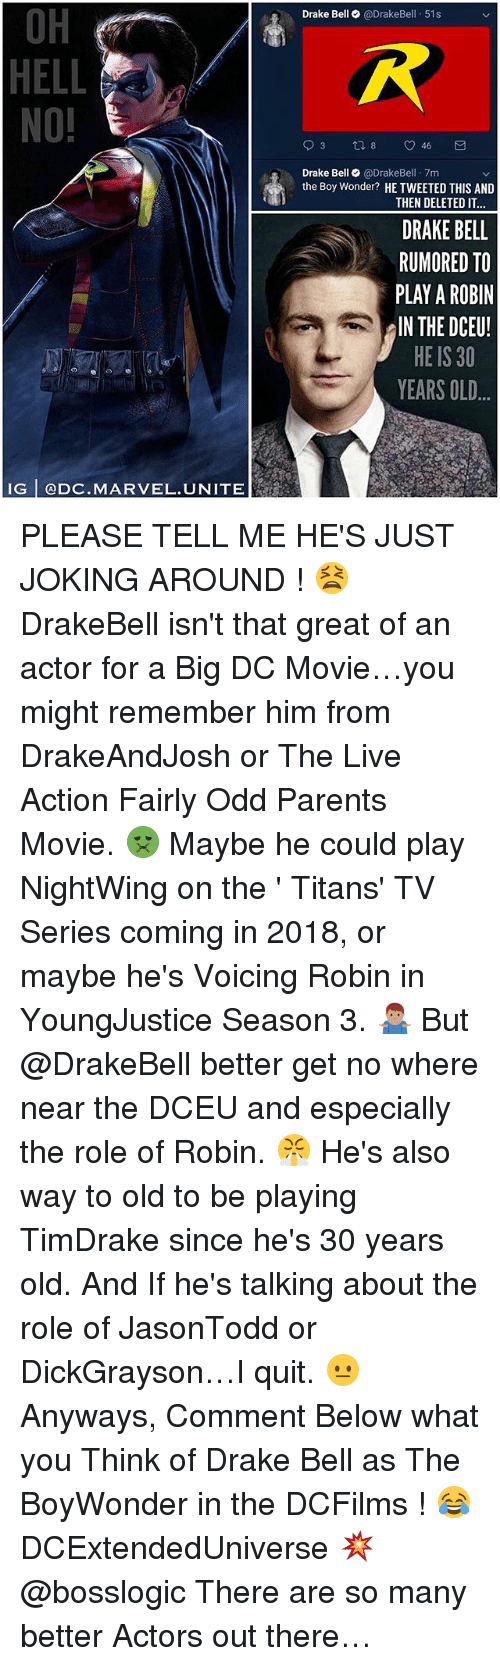 Drake, Drake Bell, and Memes: OH  HELL  NO!  Drake Bell @DrakeBell 51s  Drake Bell@DrakeBel 7m  the Boy Wonder? HE TWEETED THIS AND  THEN DELETED IT  DRAKE BELL  RUMORED TO  PLAY A ROBIN  IN THE DCEU!  HE IS 30  YEARS OLD  IG @DC.MARVEL.UNITE PLEASE TELL ME HE'S JUST JOKING AROUND ! 😫 DrakeBell isn't that great of an actor for a Big DC Movie…you might remember him from DrakeAndJosh or The Live Action Fairly Odd Parents Movie. 🤢 Maybe he could play NightWing on the ' Titans' TV Series coming in 2018, or maybe he's Voicing Robin in YoungJustice Season 3. 🤷🏽♂️ But @DrakeBell better get no where near the DCEU and especially the role of Robin. 😤 He's also way to old to be playing TimDrake since he's 30 years old. And If he's talking about the role of JasonTodd or DickGrayson…I quit. 😐 Anyways, Comment Below what you Think of Drake Bell as The BoyWonder in the DCFilms ! 😂 DCExtendedUniverse 💥 @bosslogic There are so many better Actors out there…